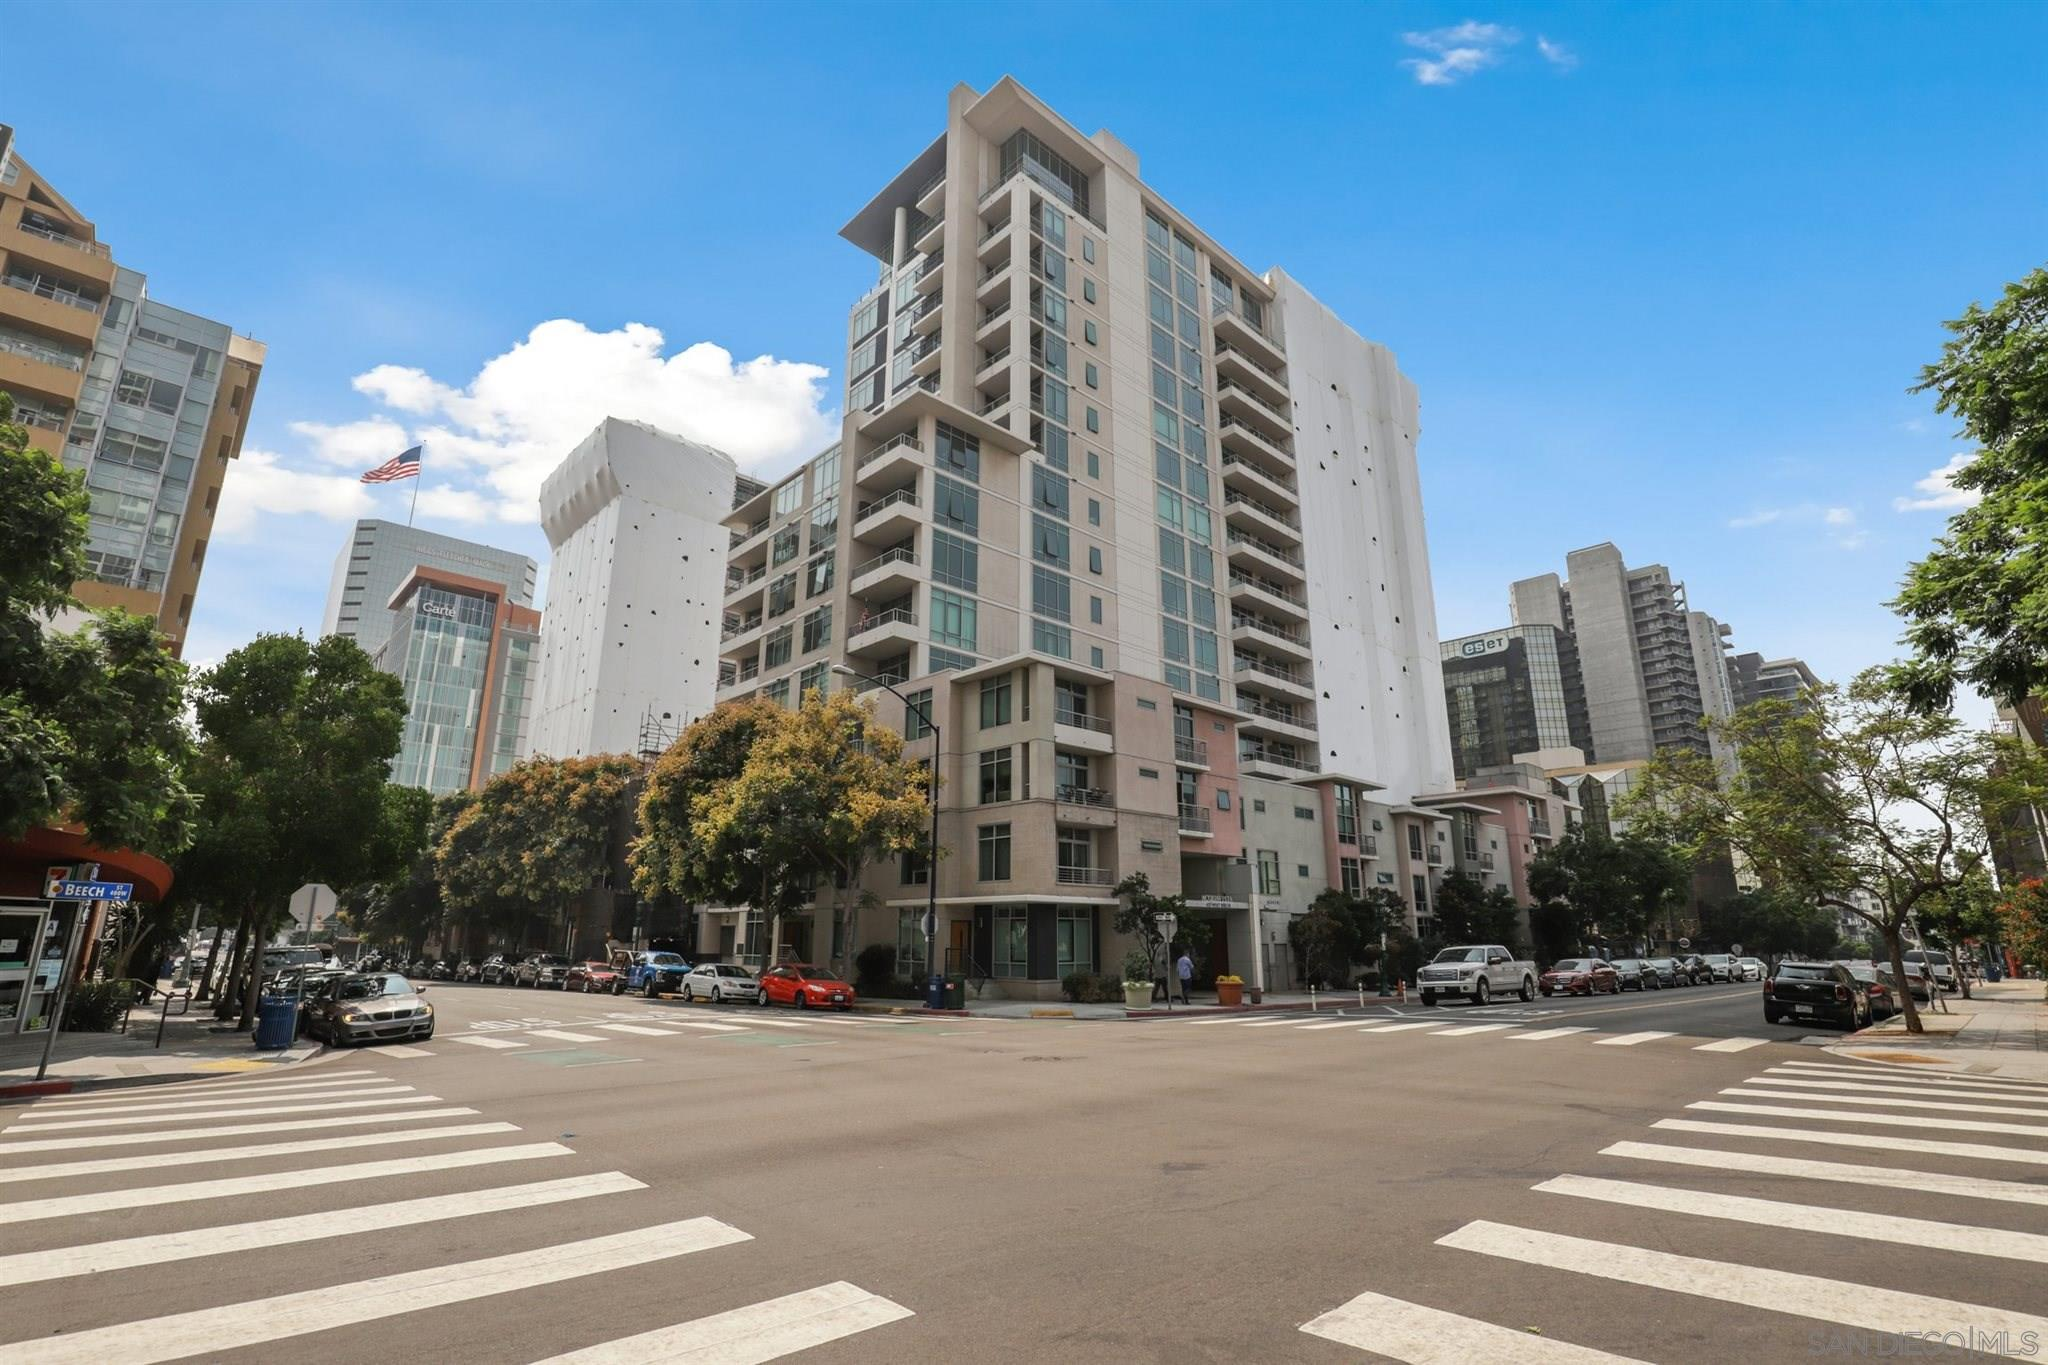 Property at 425 W Beech St San Diego